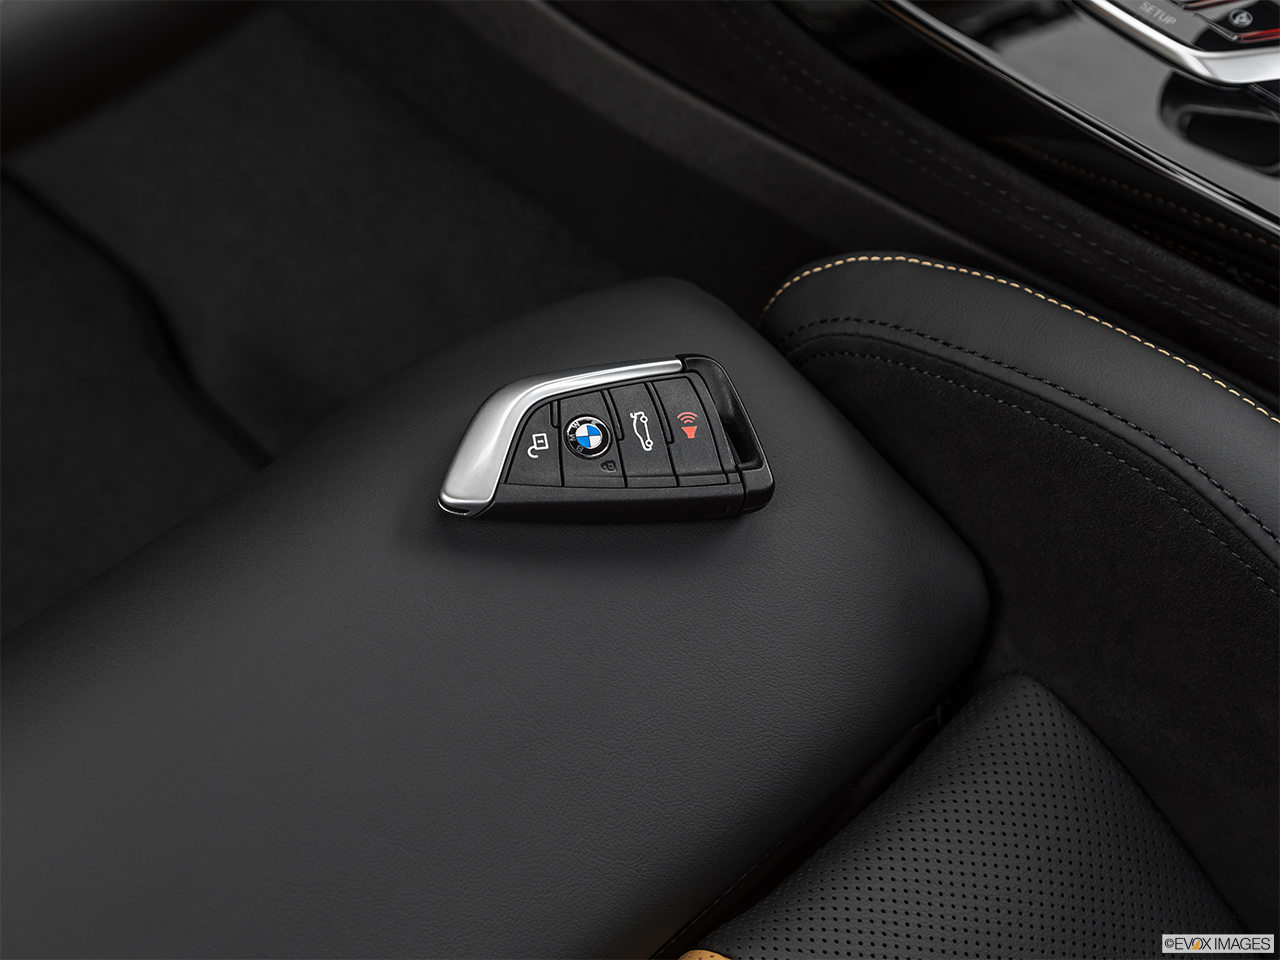 2020 BMW X3 M Competition Key fob on driver's seat.